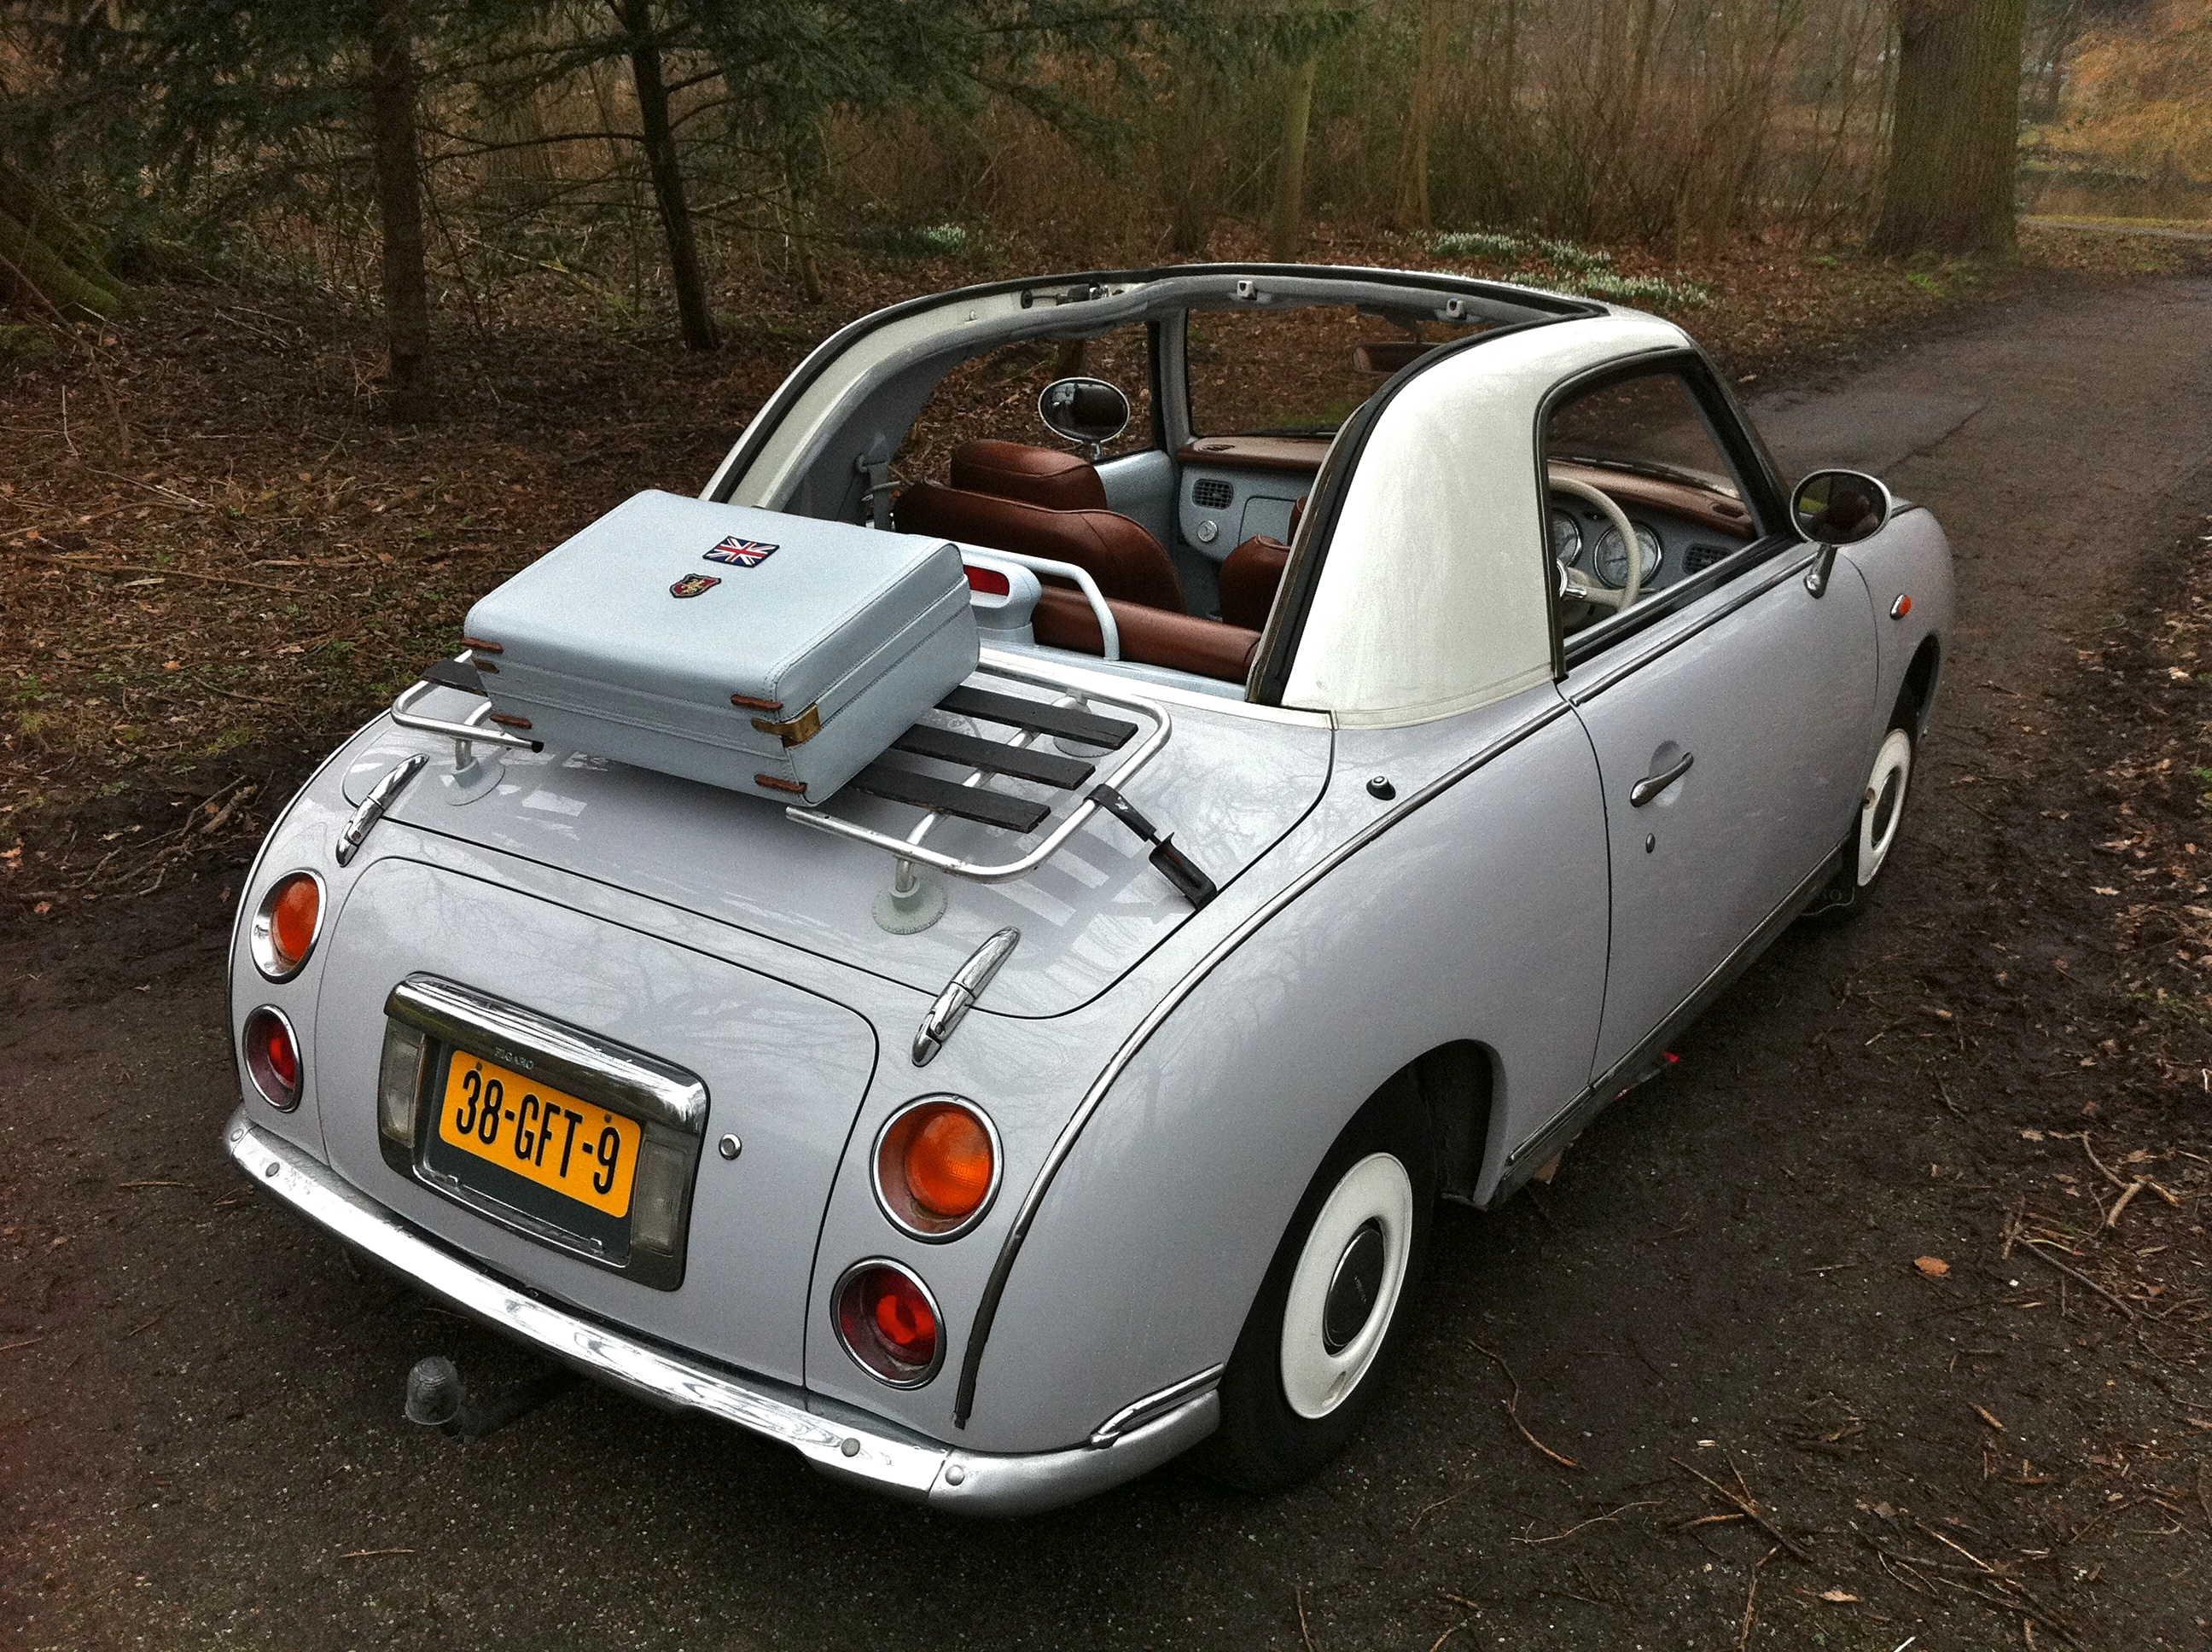 Chesterfield Nissan Figaro With Hartman Suitcase On The